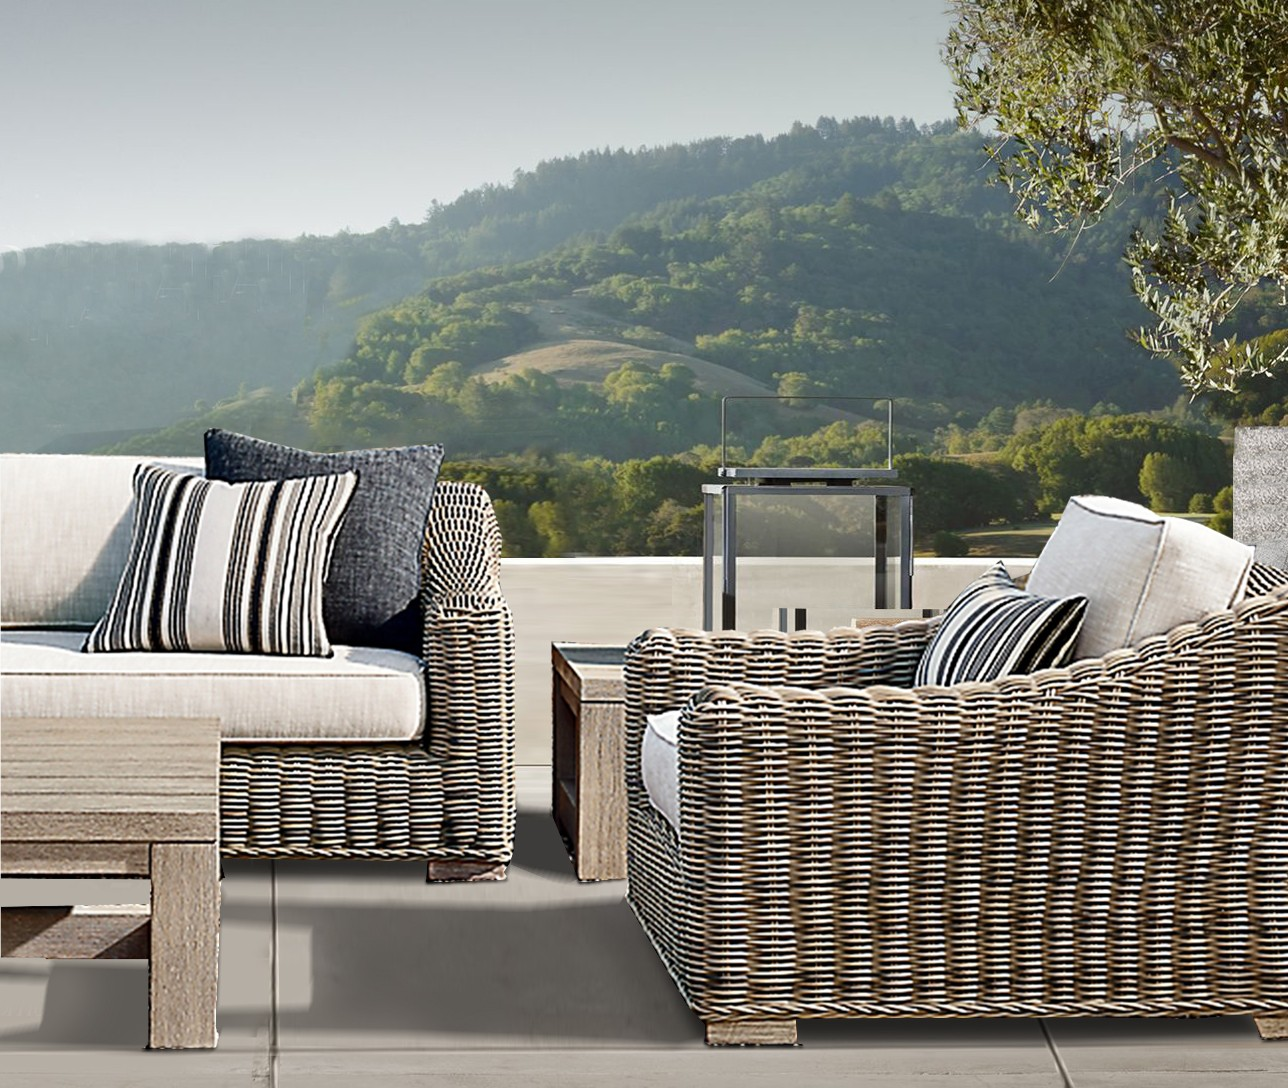 Barcelona Luxury Bespoke Outdoor Large Sofa | Hadley Rose on Bespoke Outdoor Living id=20893